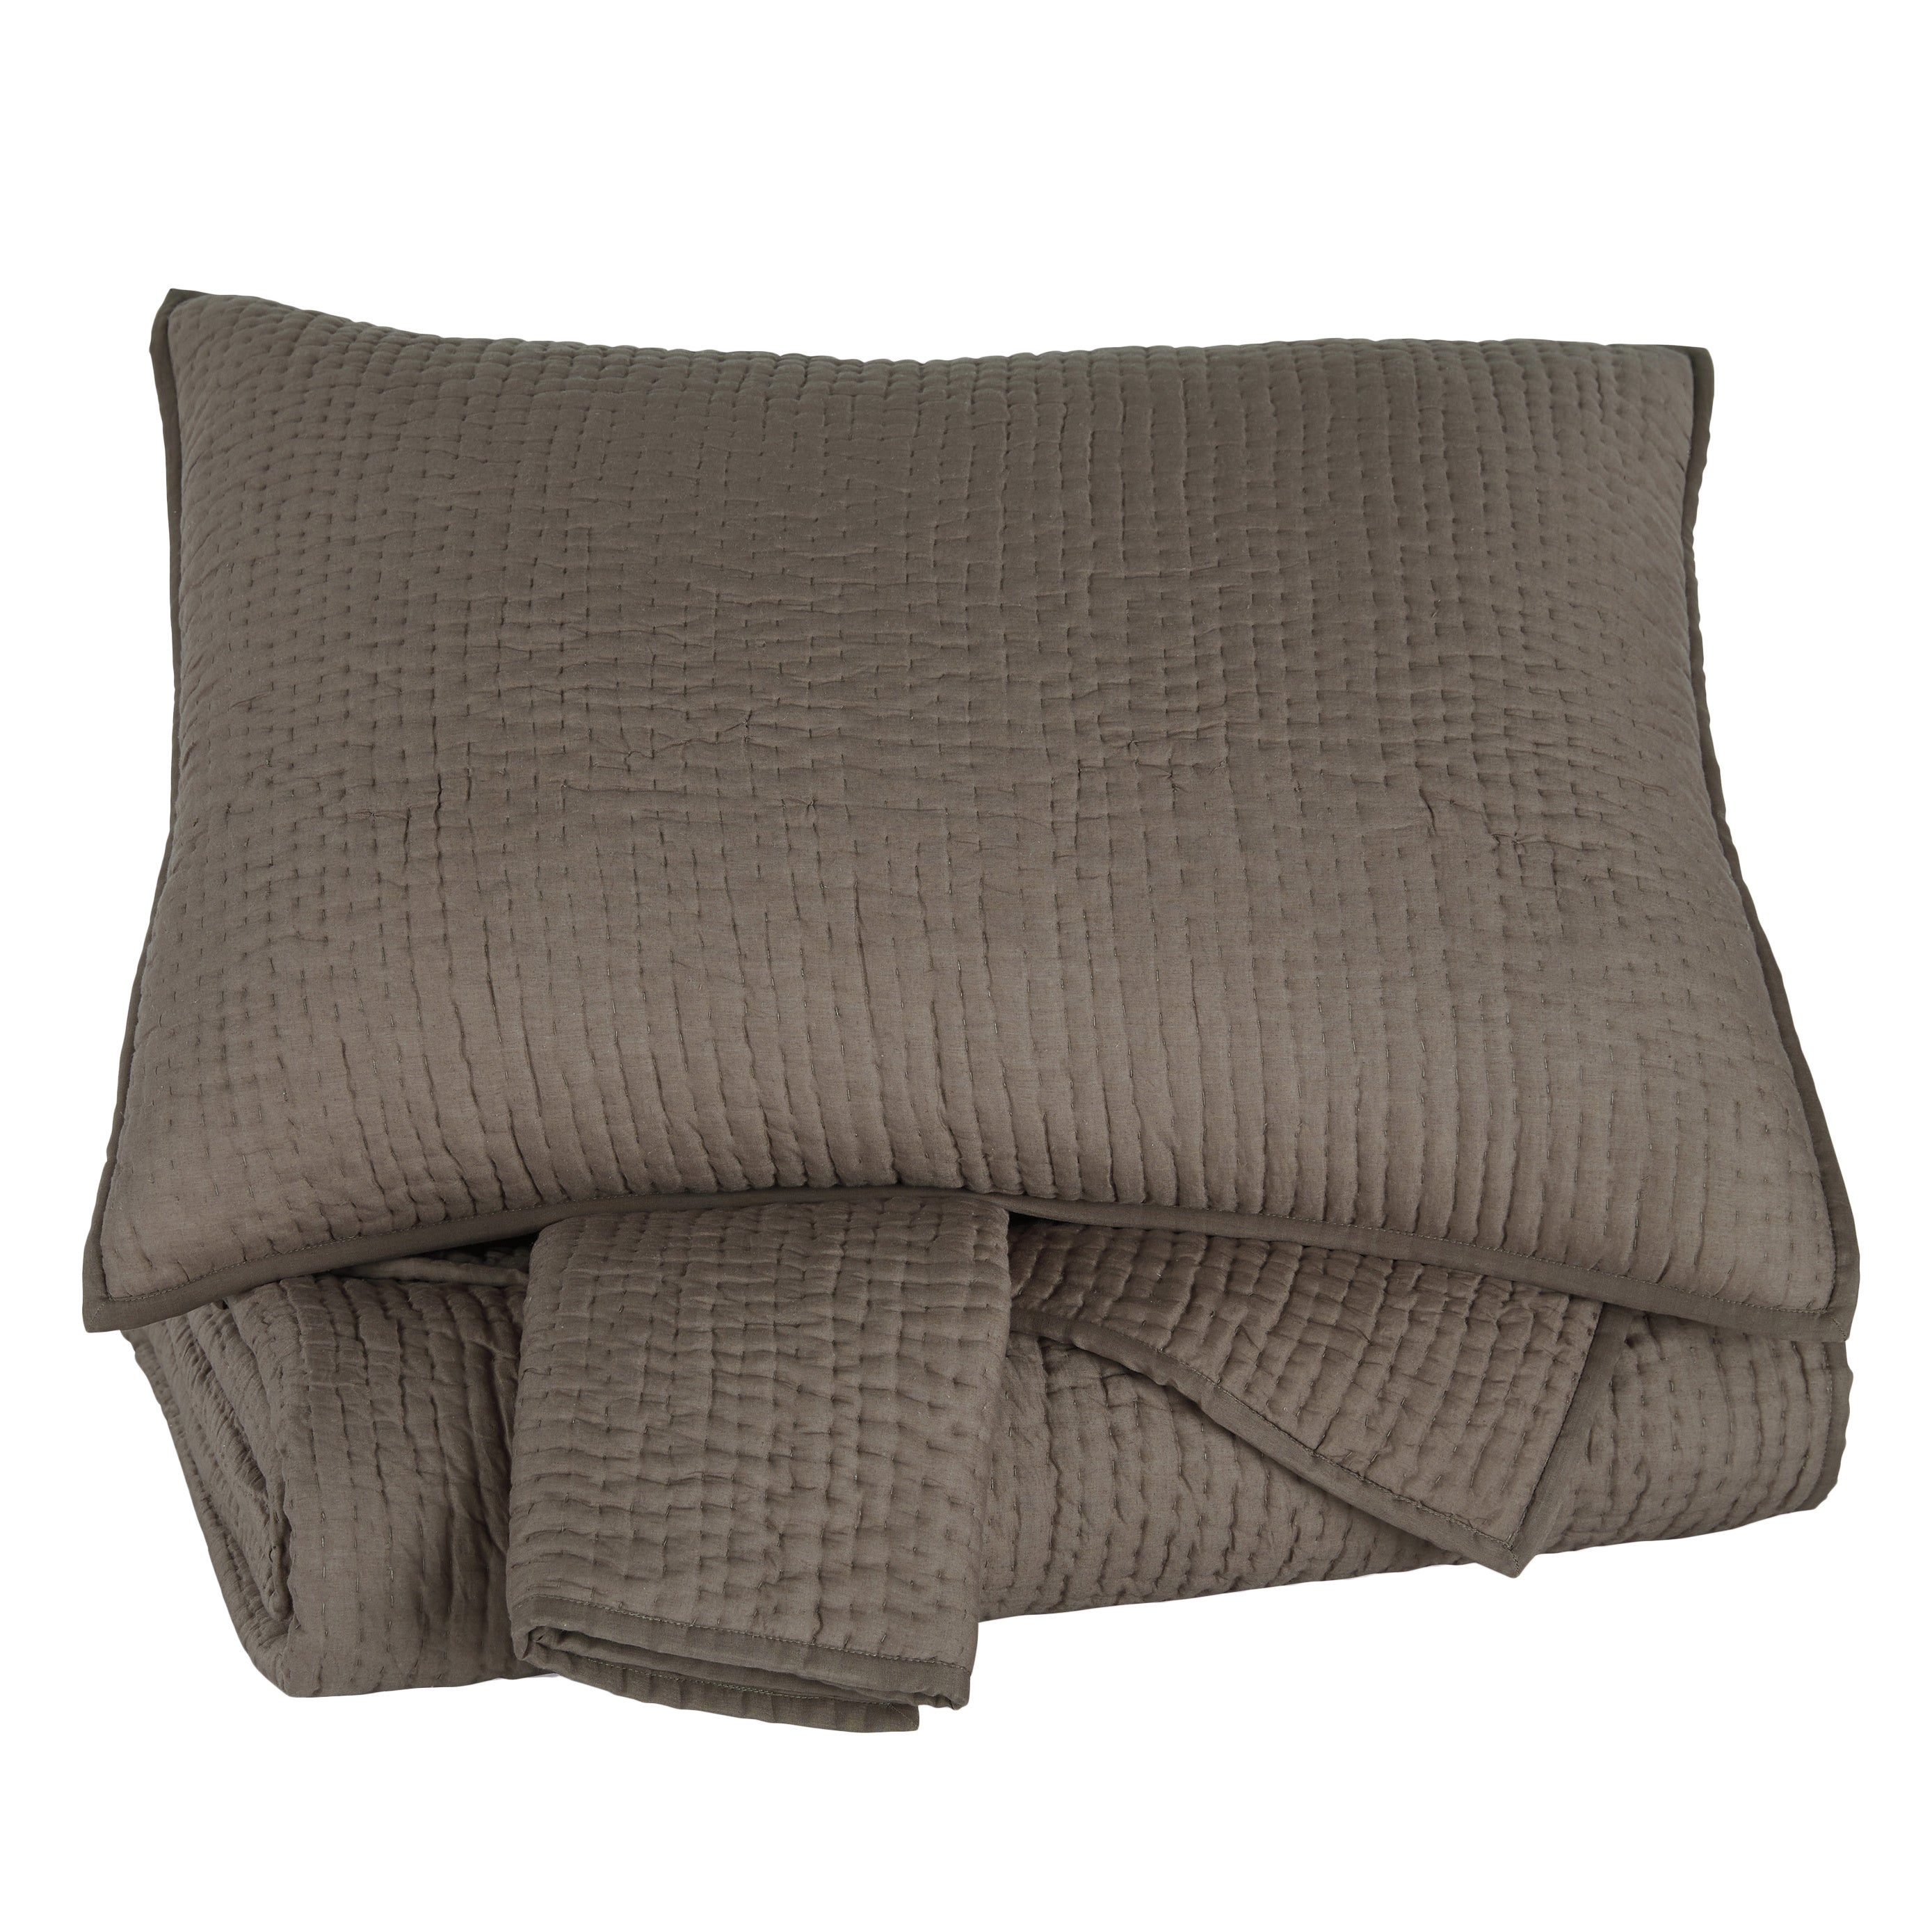 Signature Design by Ashley Signature Designs by Ashley Hand Quilted Charcoal 3-piece Comforter Set